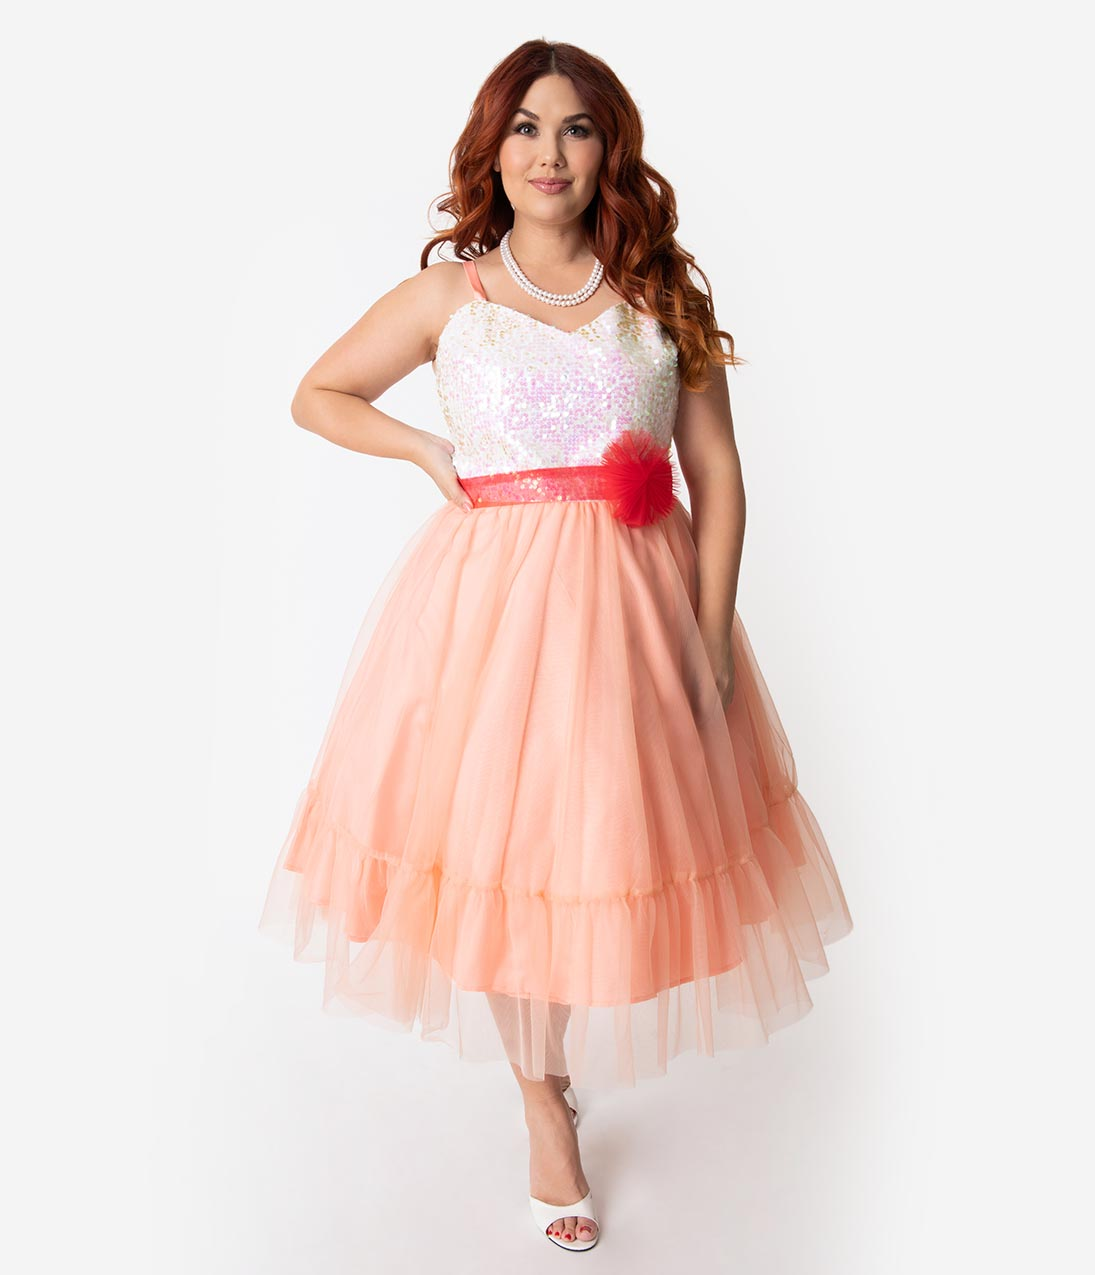 Cute Mexican Girls for Prom Short Dresses